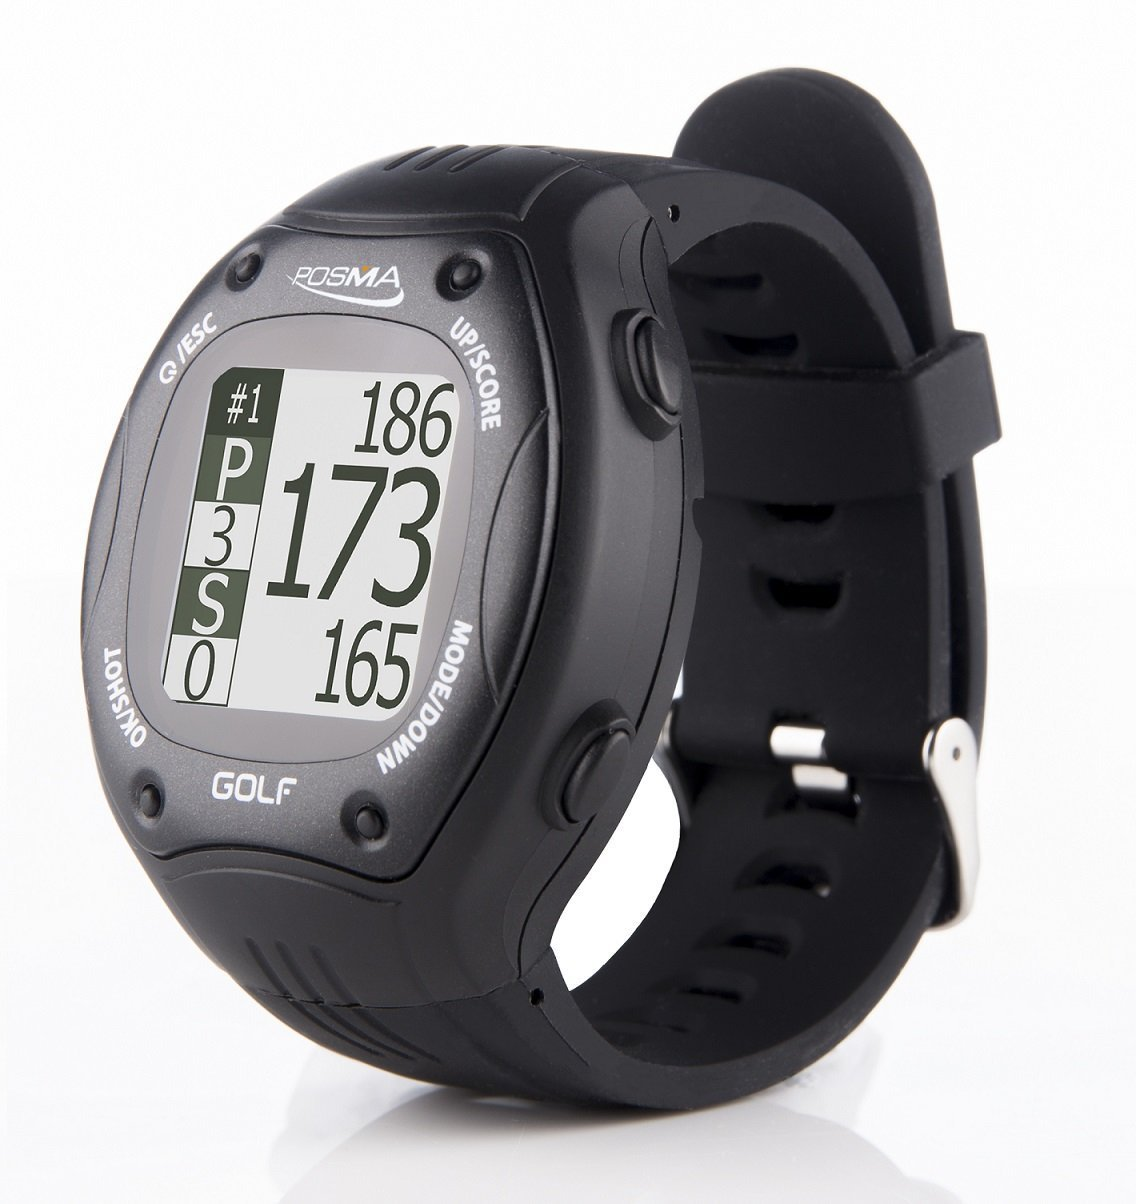 POSMA GT1Plus Golf Trainer GPS Golf Watch Range Finder, Preloaded Europe, America, Asia Golf Courses no Subscription, Black, Courses incl. US, Canada, Europe, Asia, Australia, New Zealand etc. by POSMA